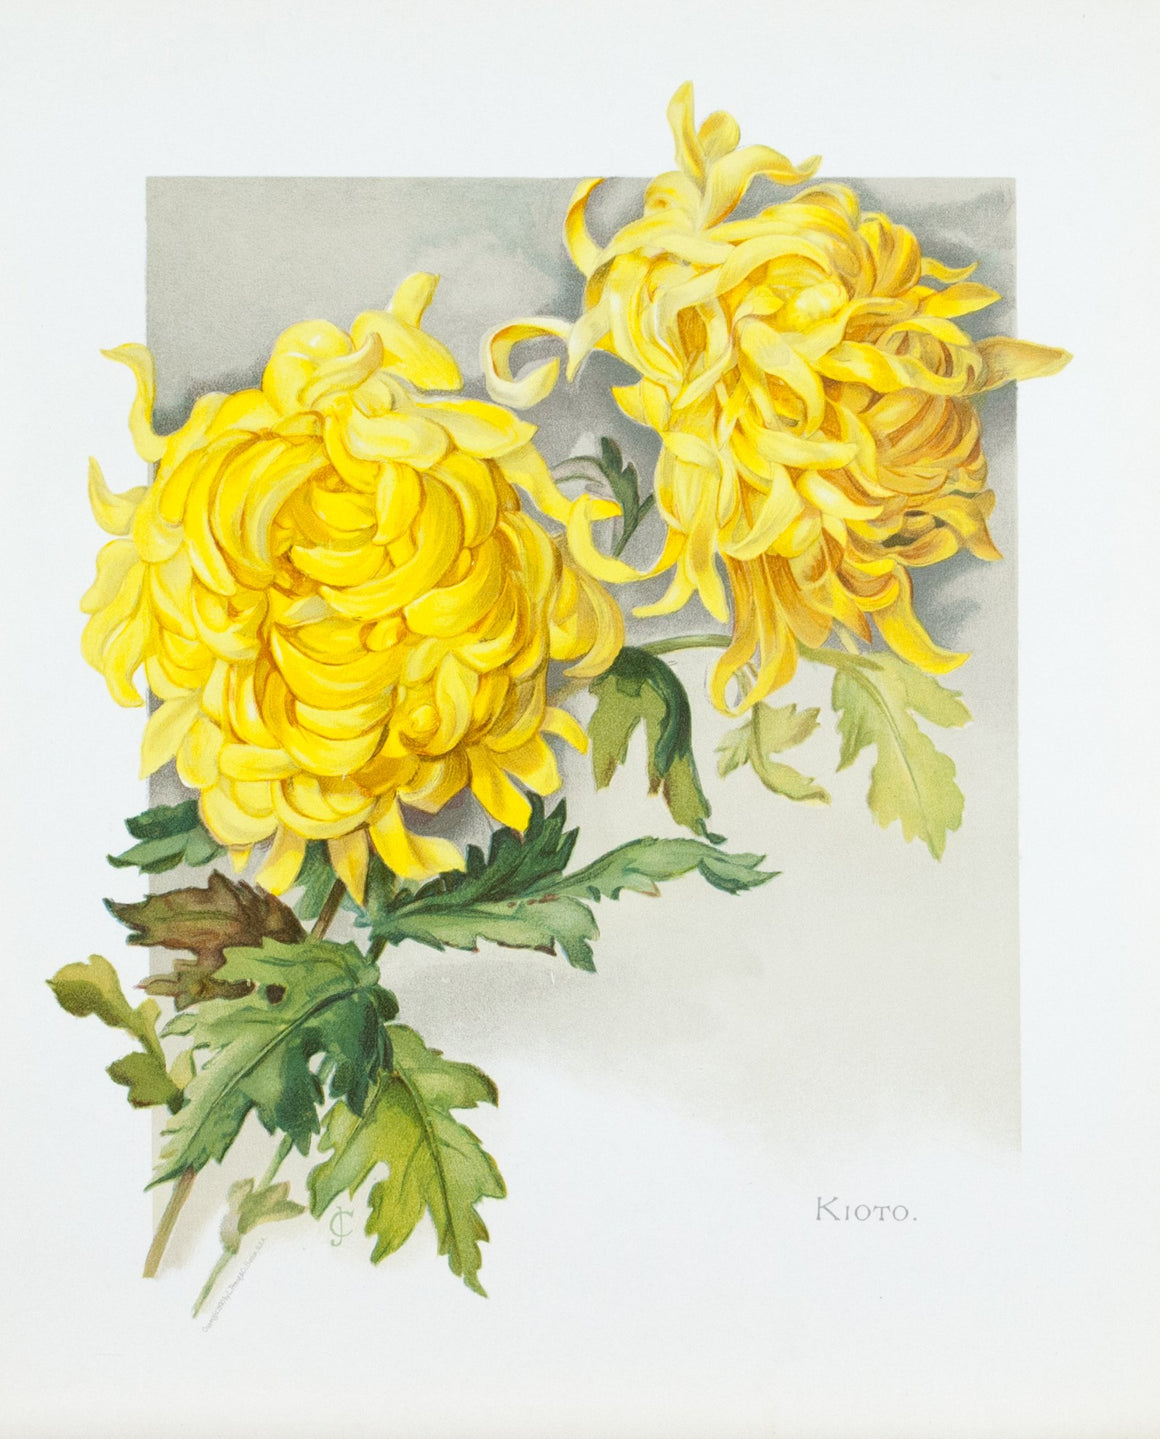 1890 Kioto Chrysanthemum - Mathews